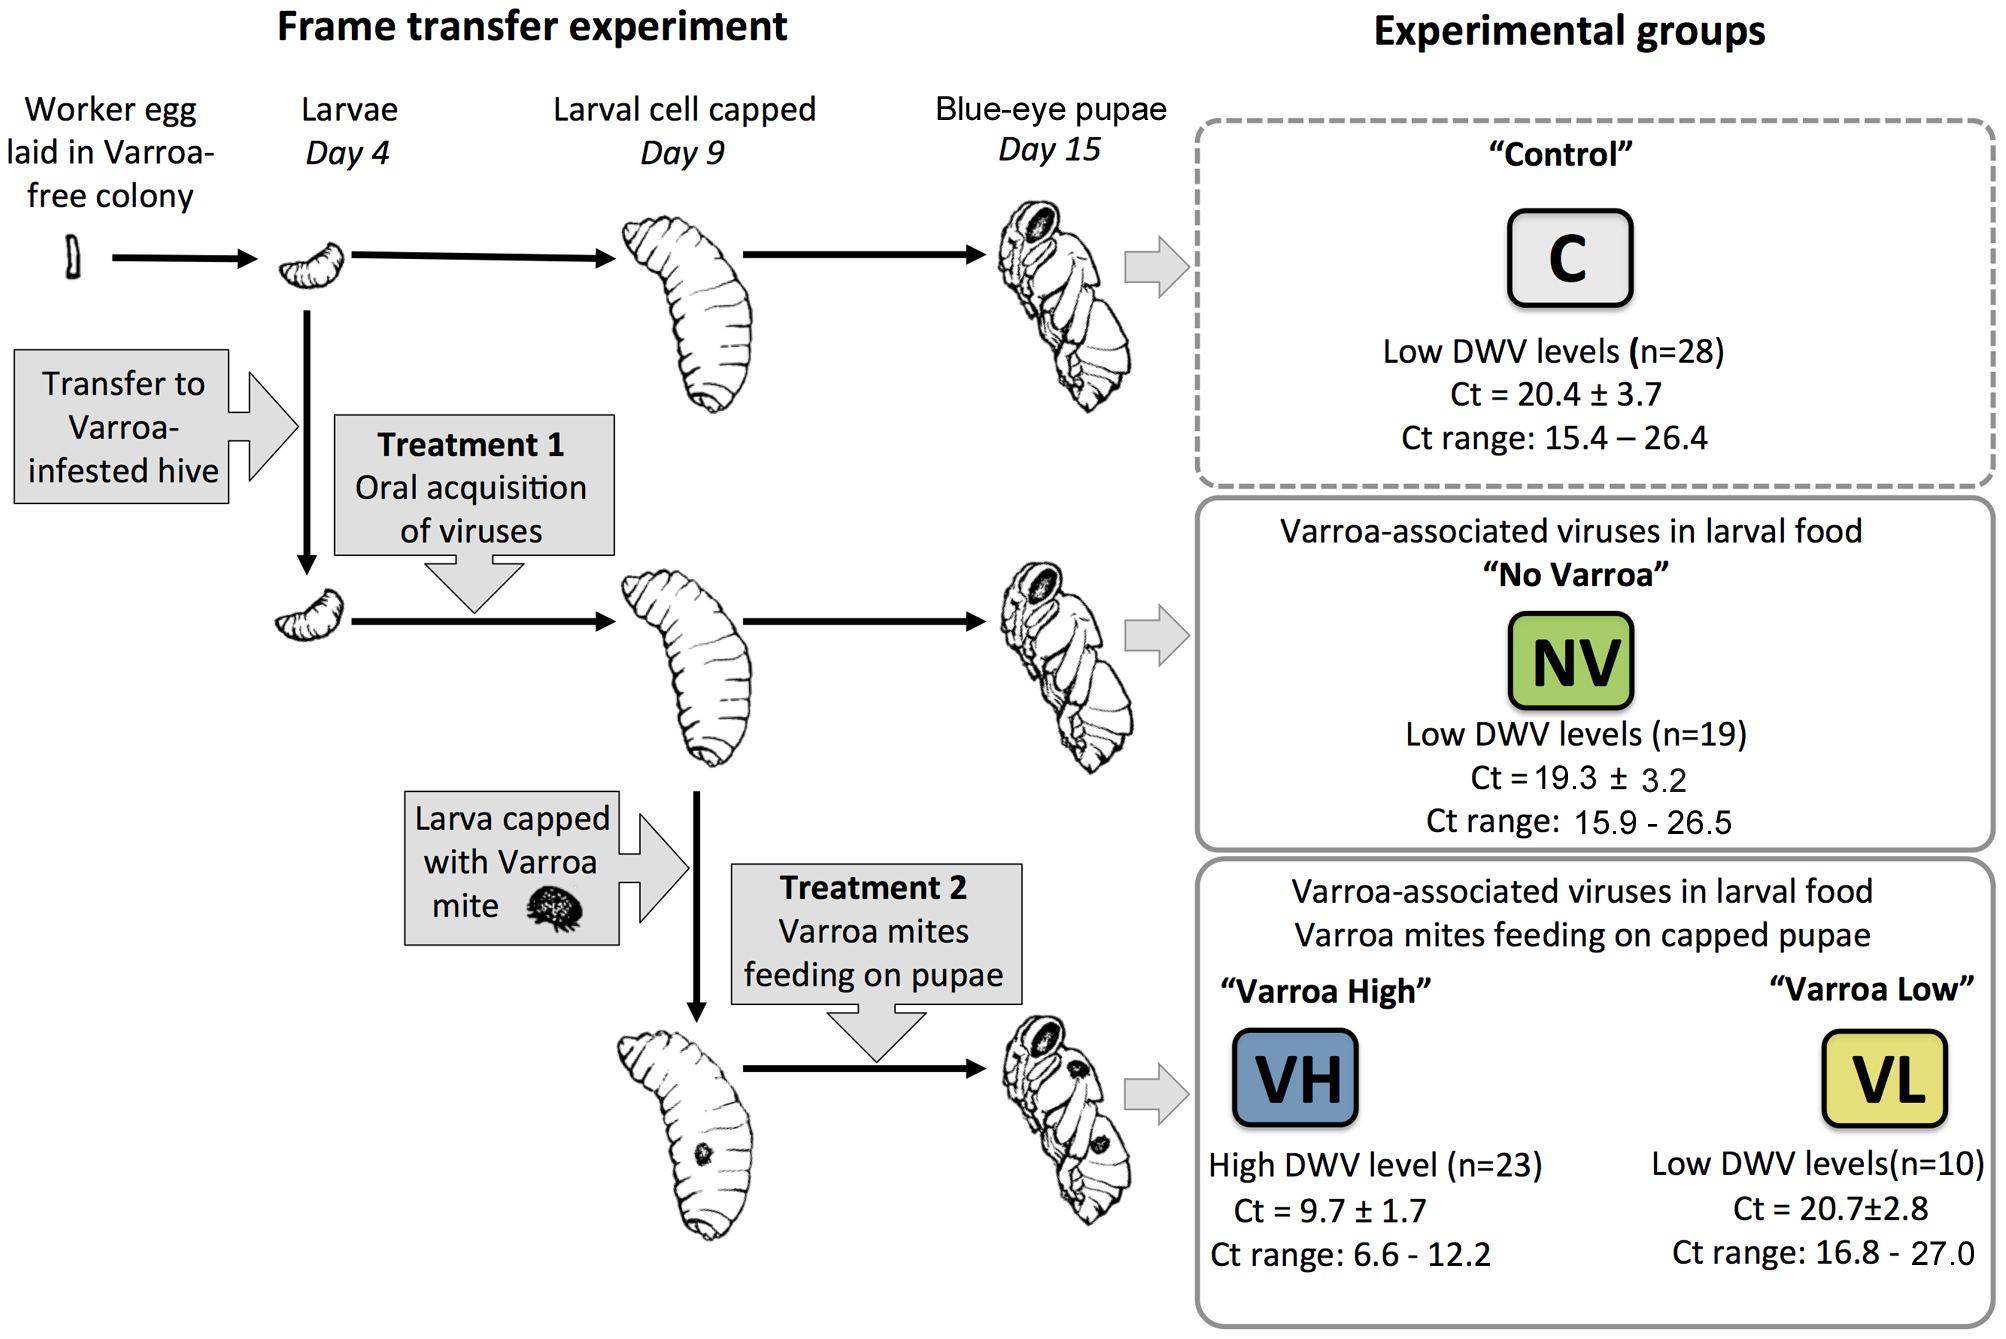 Design of the frame transfer experiment, summary of treatments, and experimental honeybee groups.